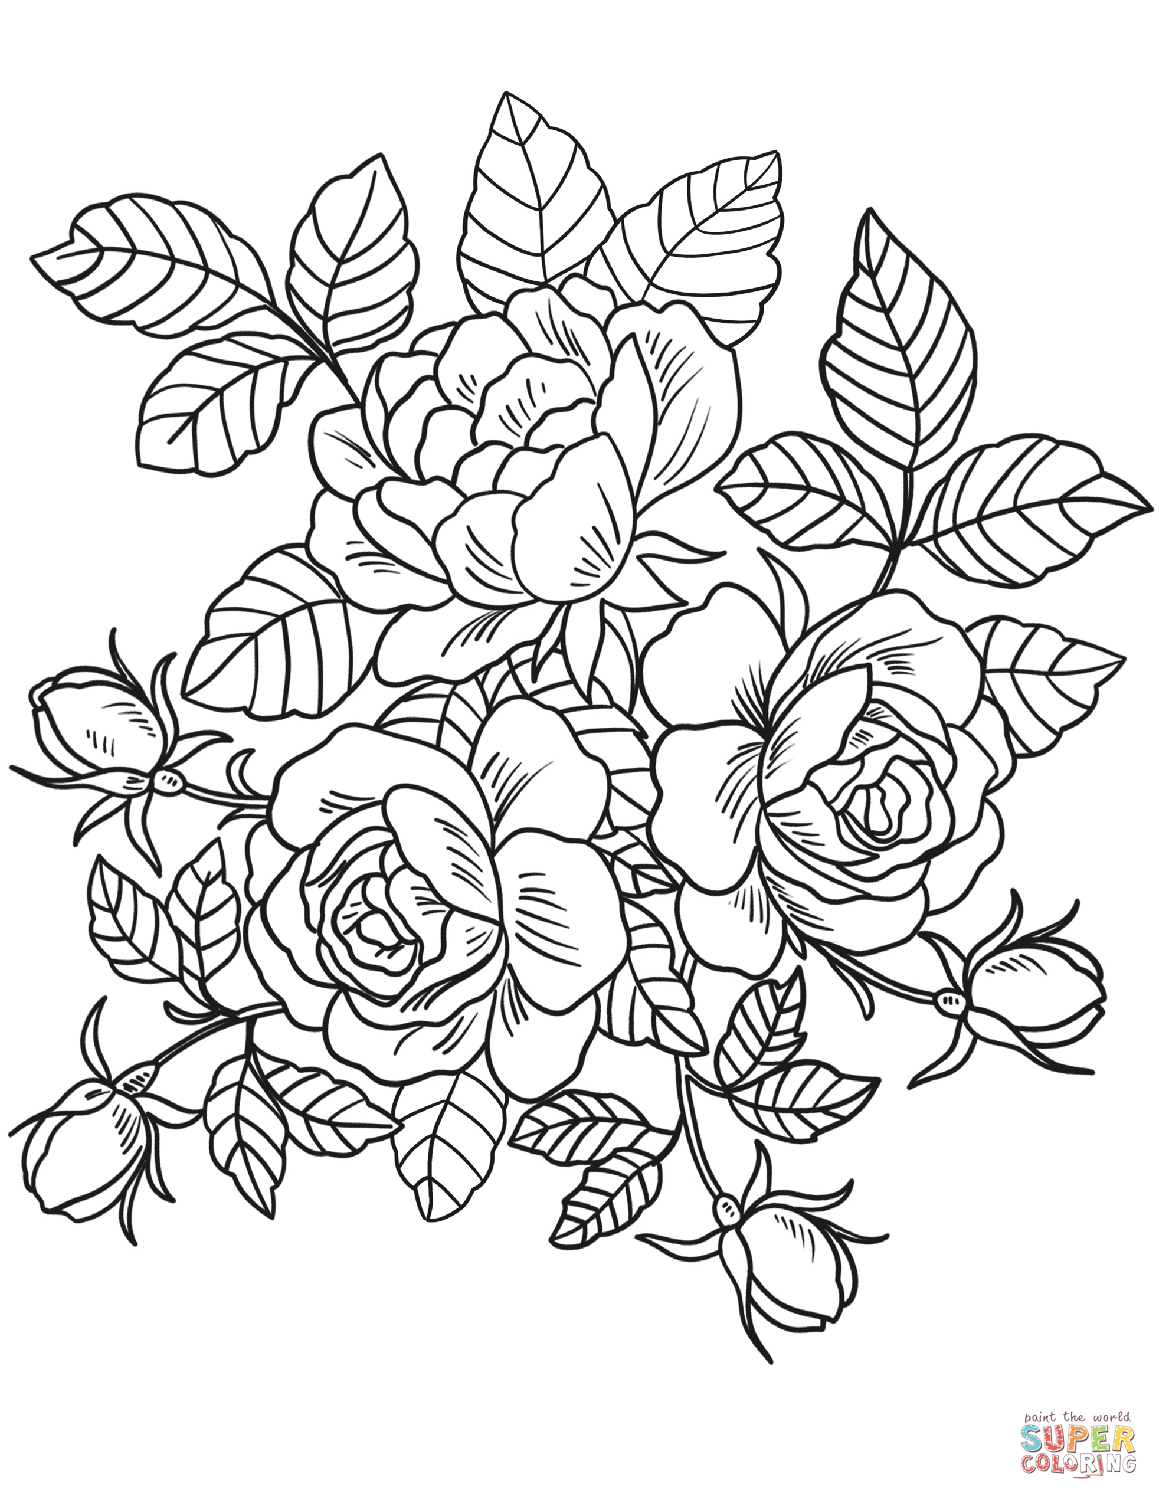 Free Printable Flower Coloring Pages Color Online Free Coloring Pages Free Flower Coloring Pages Coloring